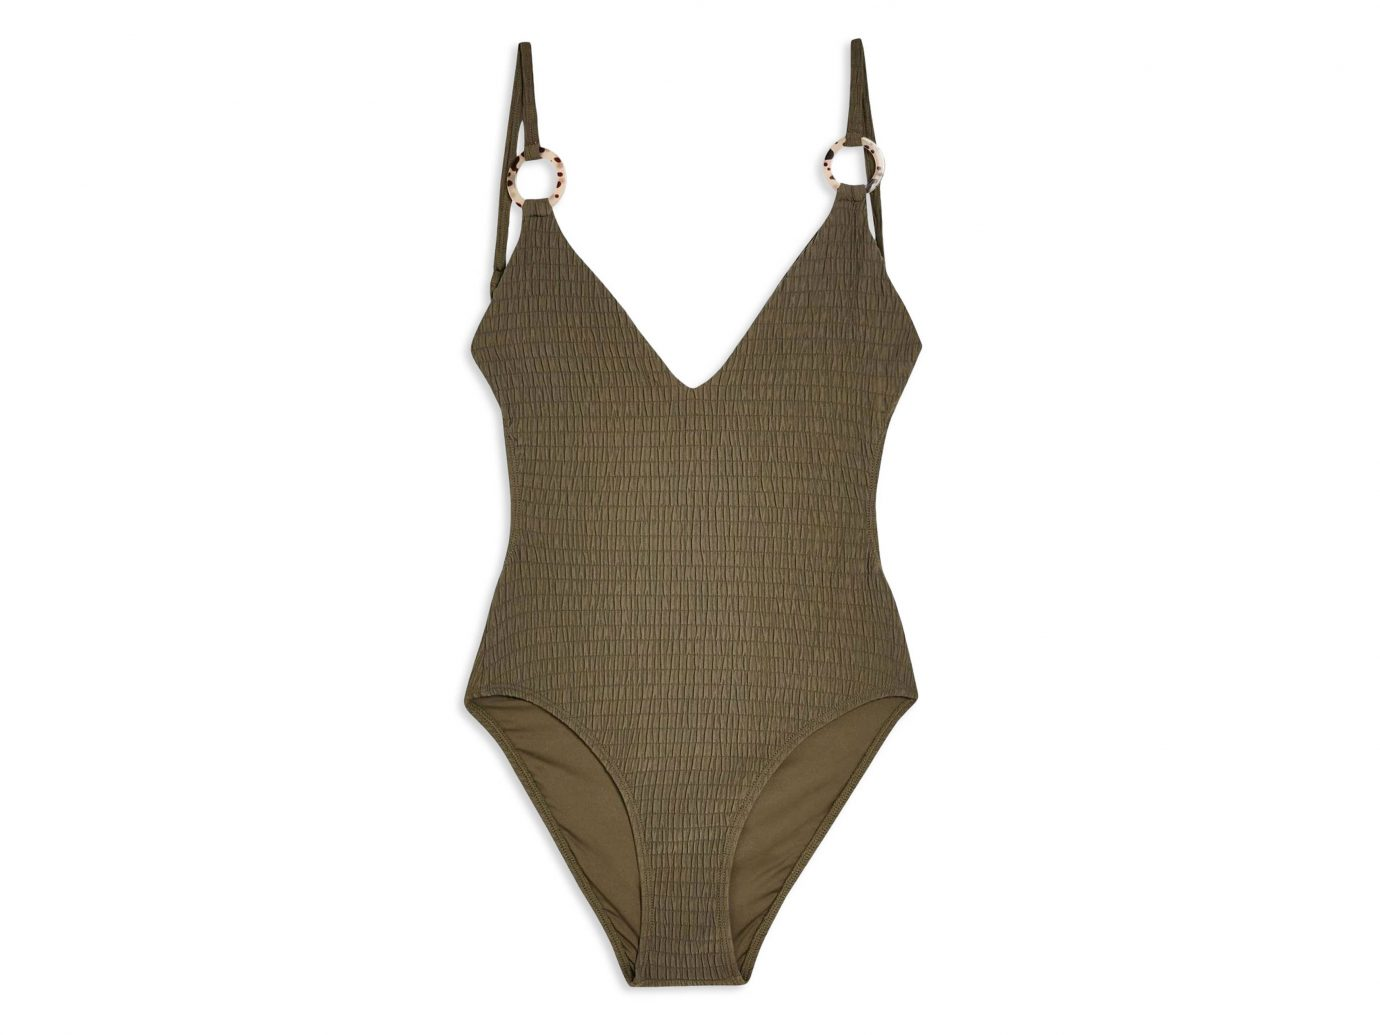 Topshop Plunge One Piece Swimsuit